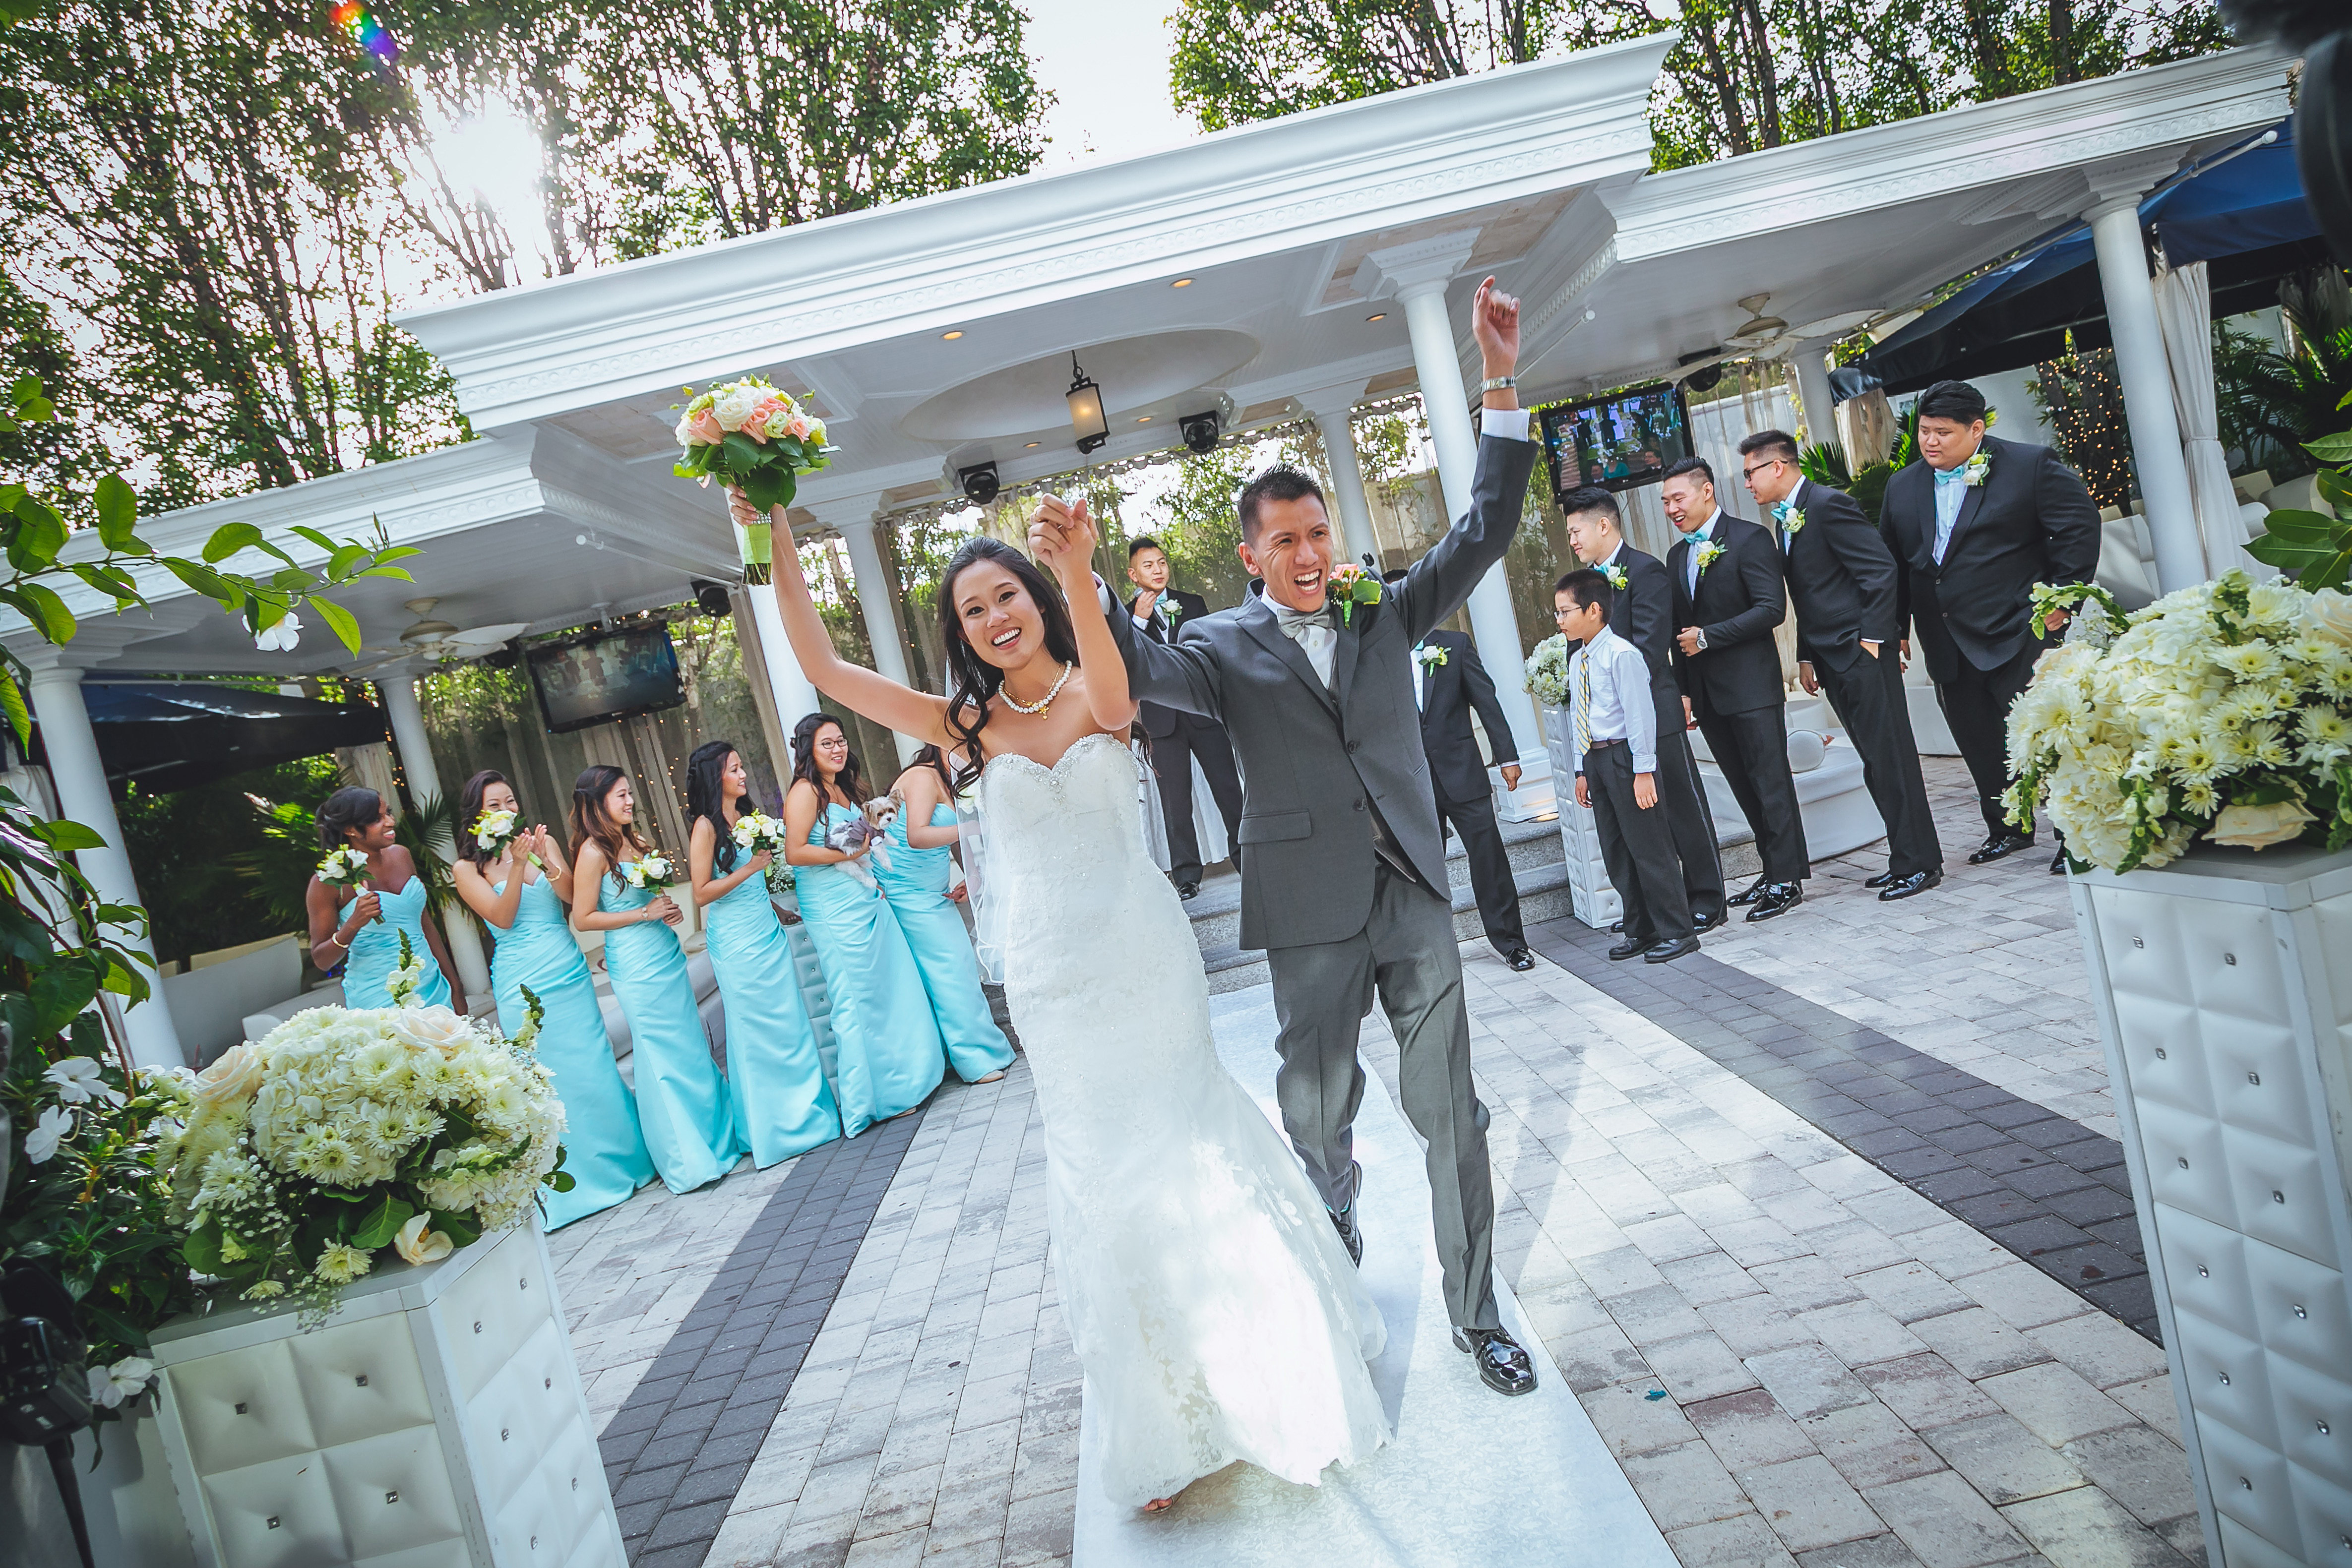 Princess Wedding Studio » Princess Wedding Studio is a top wedding ...